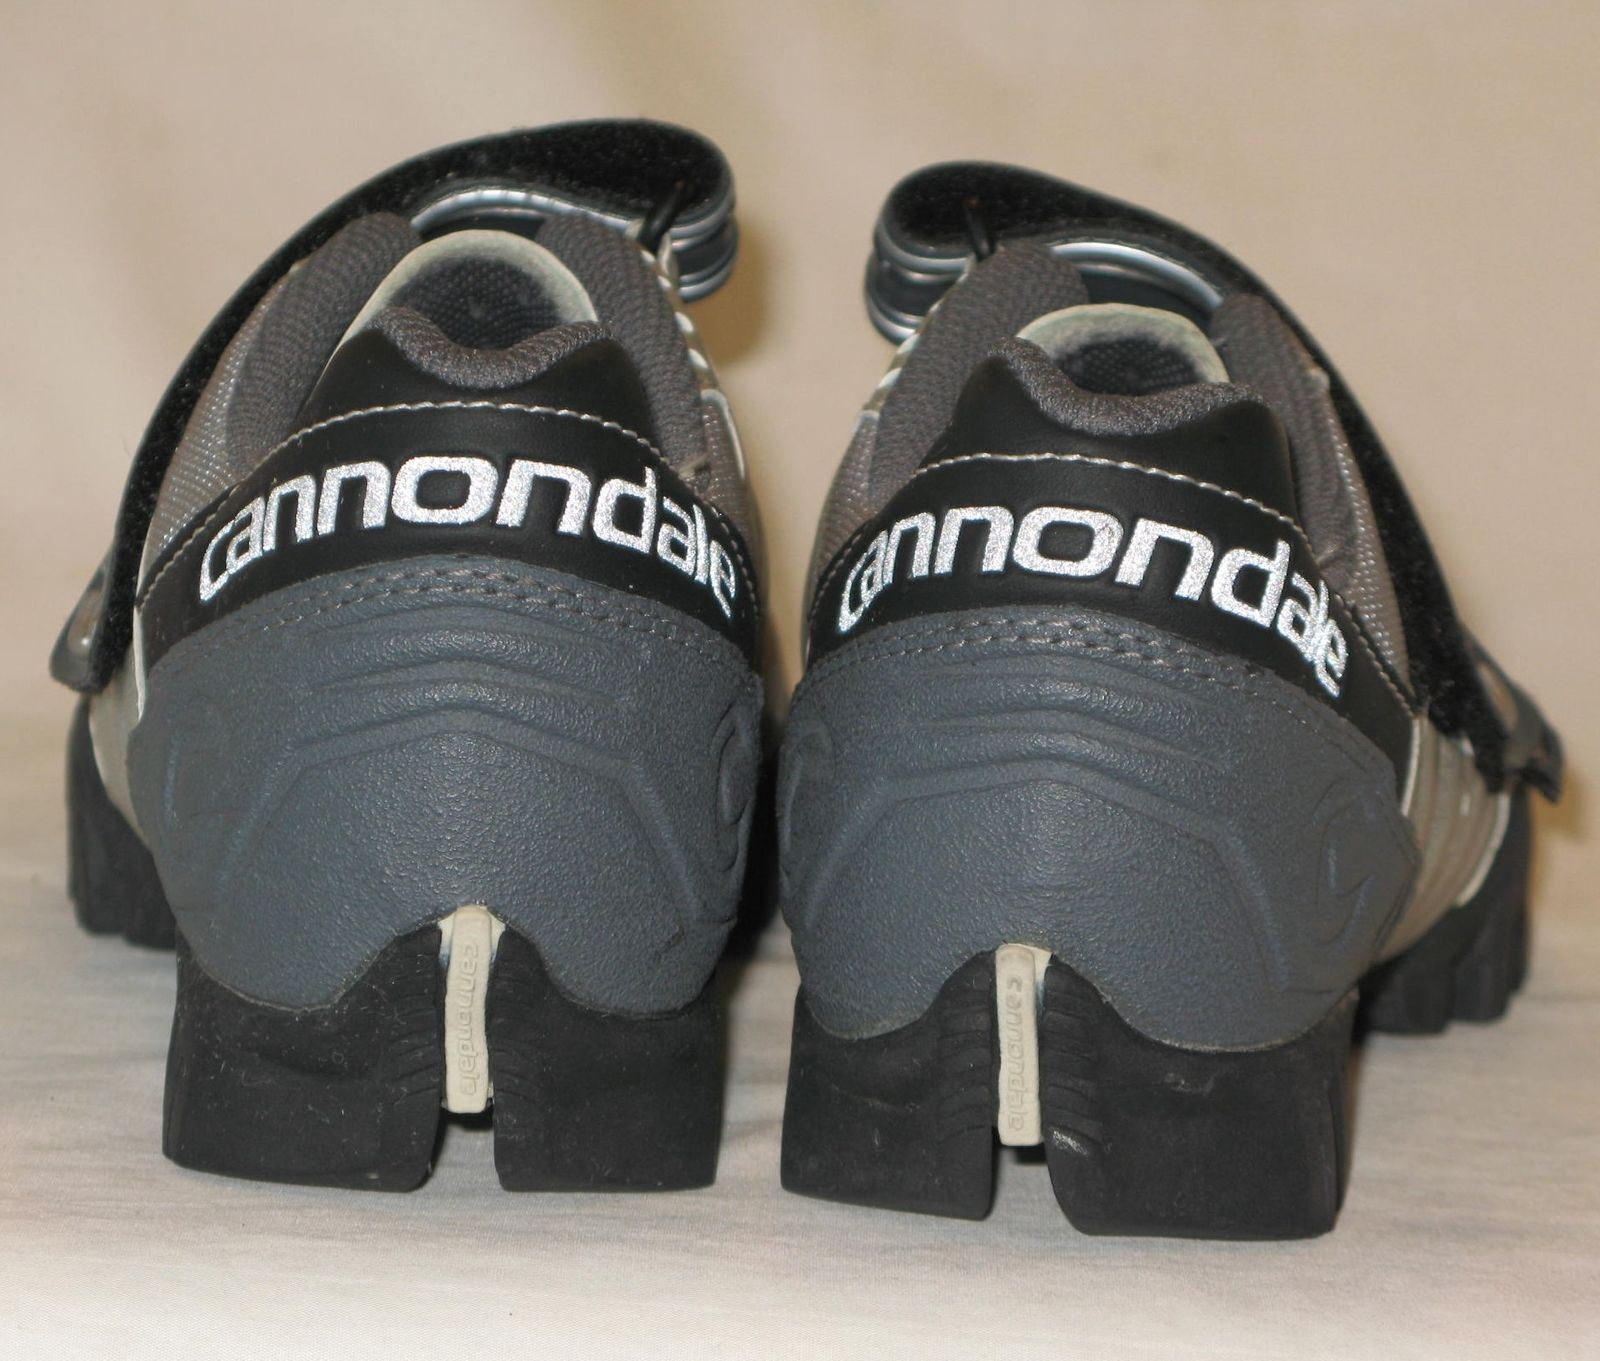 Cannondale MTB Mountain Bike Cycling Schuhes Schuhes Cycling EUR 40 USA Wm 8.5 Men 7  Unisex Style e6c82f